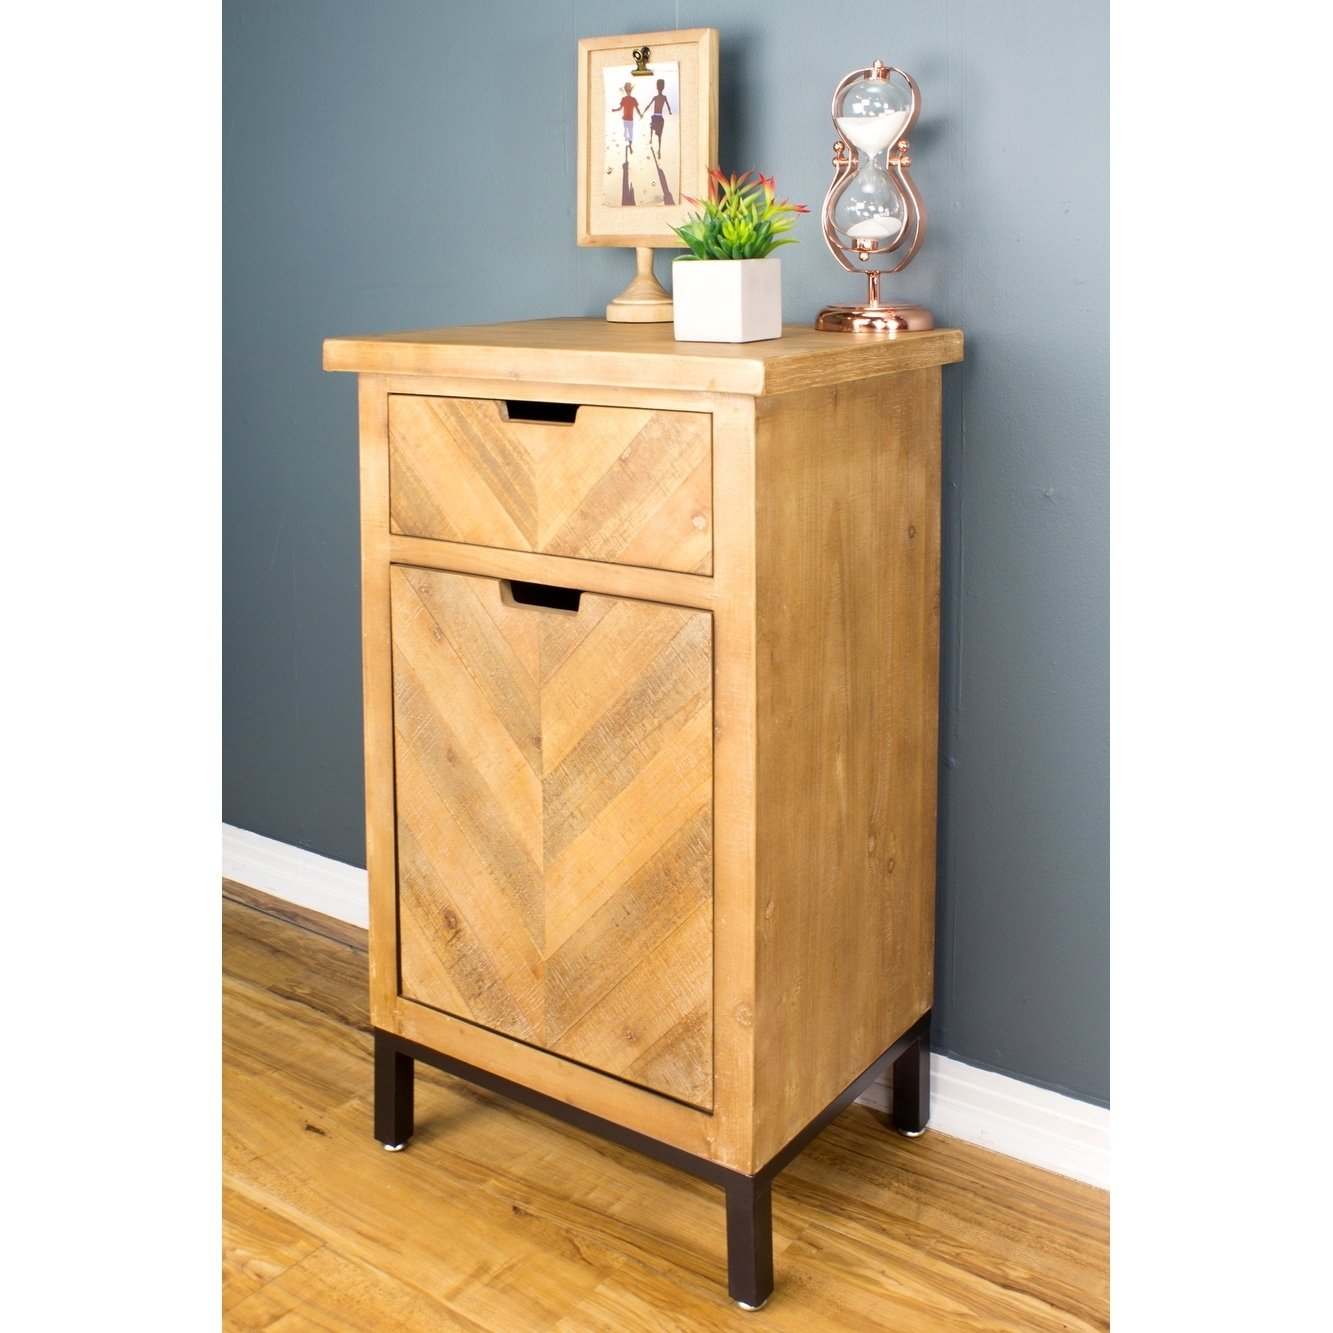 knightsbridge drawer door accent cabinet table free with drawers and doors shipping today fall linens small inches high patio furniture covers canadian tire grey wood end tables